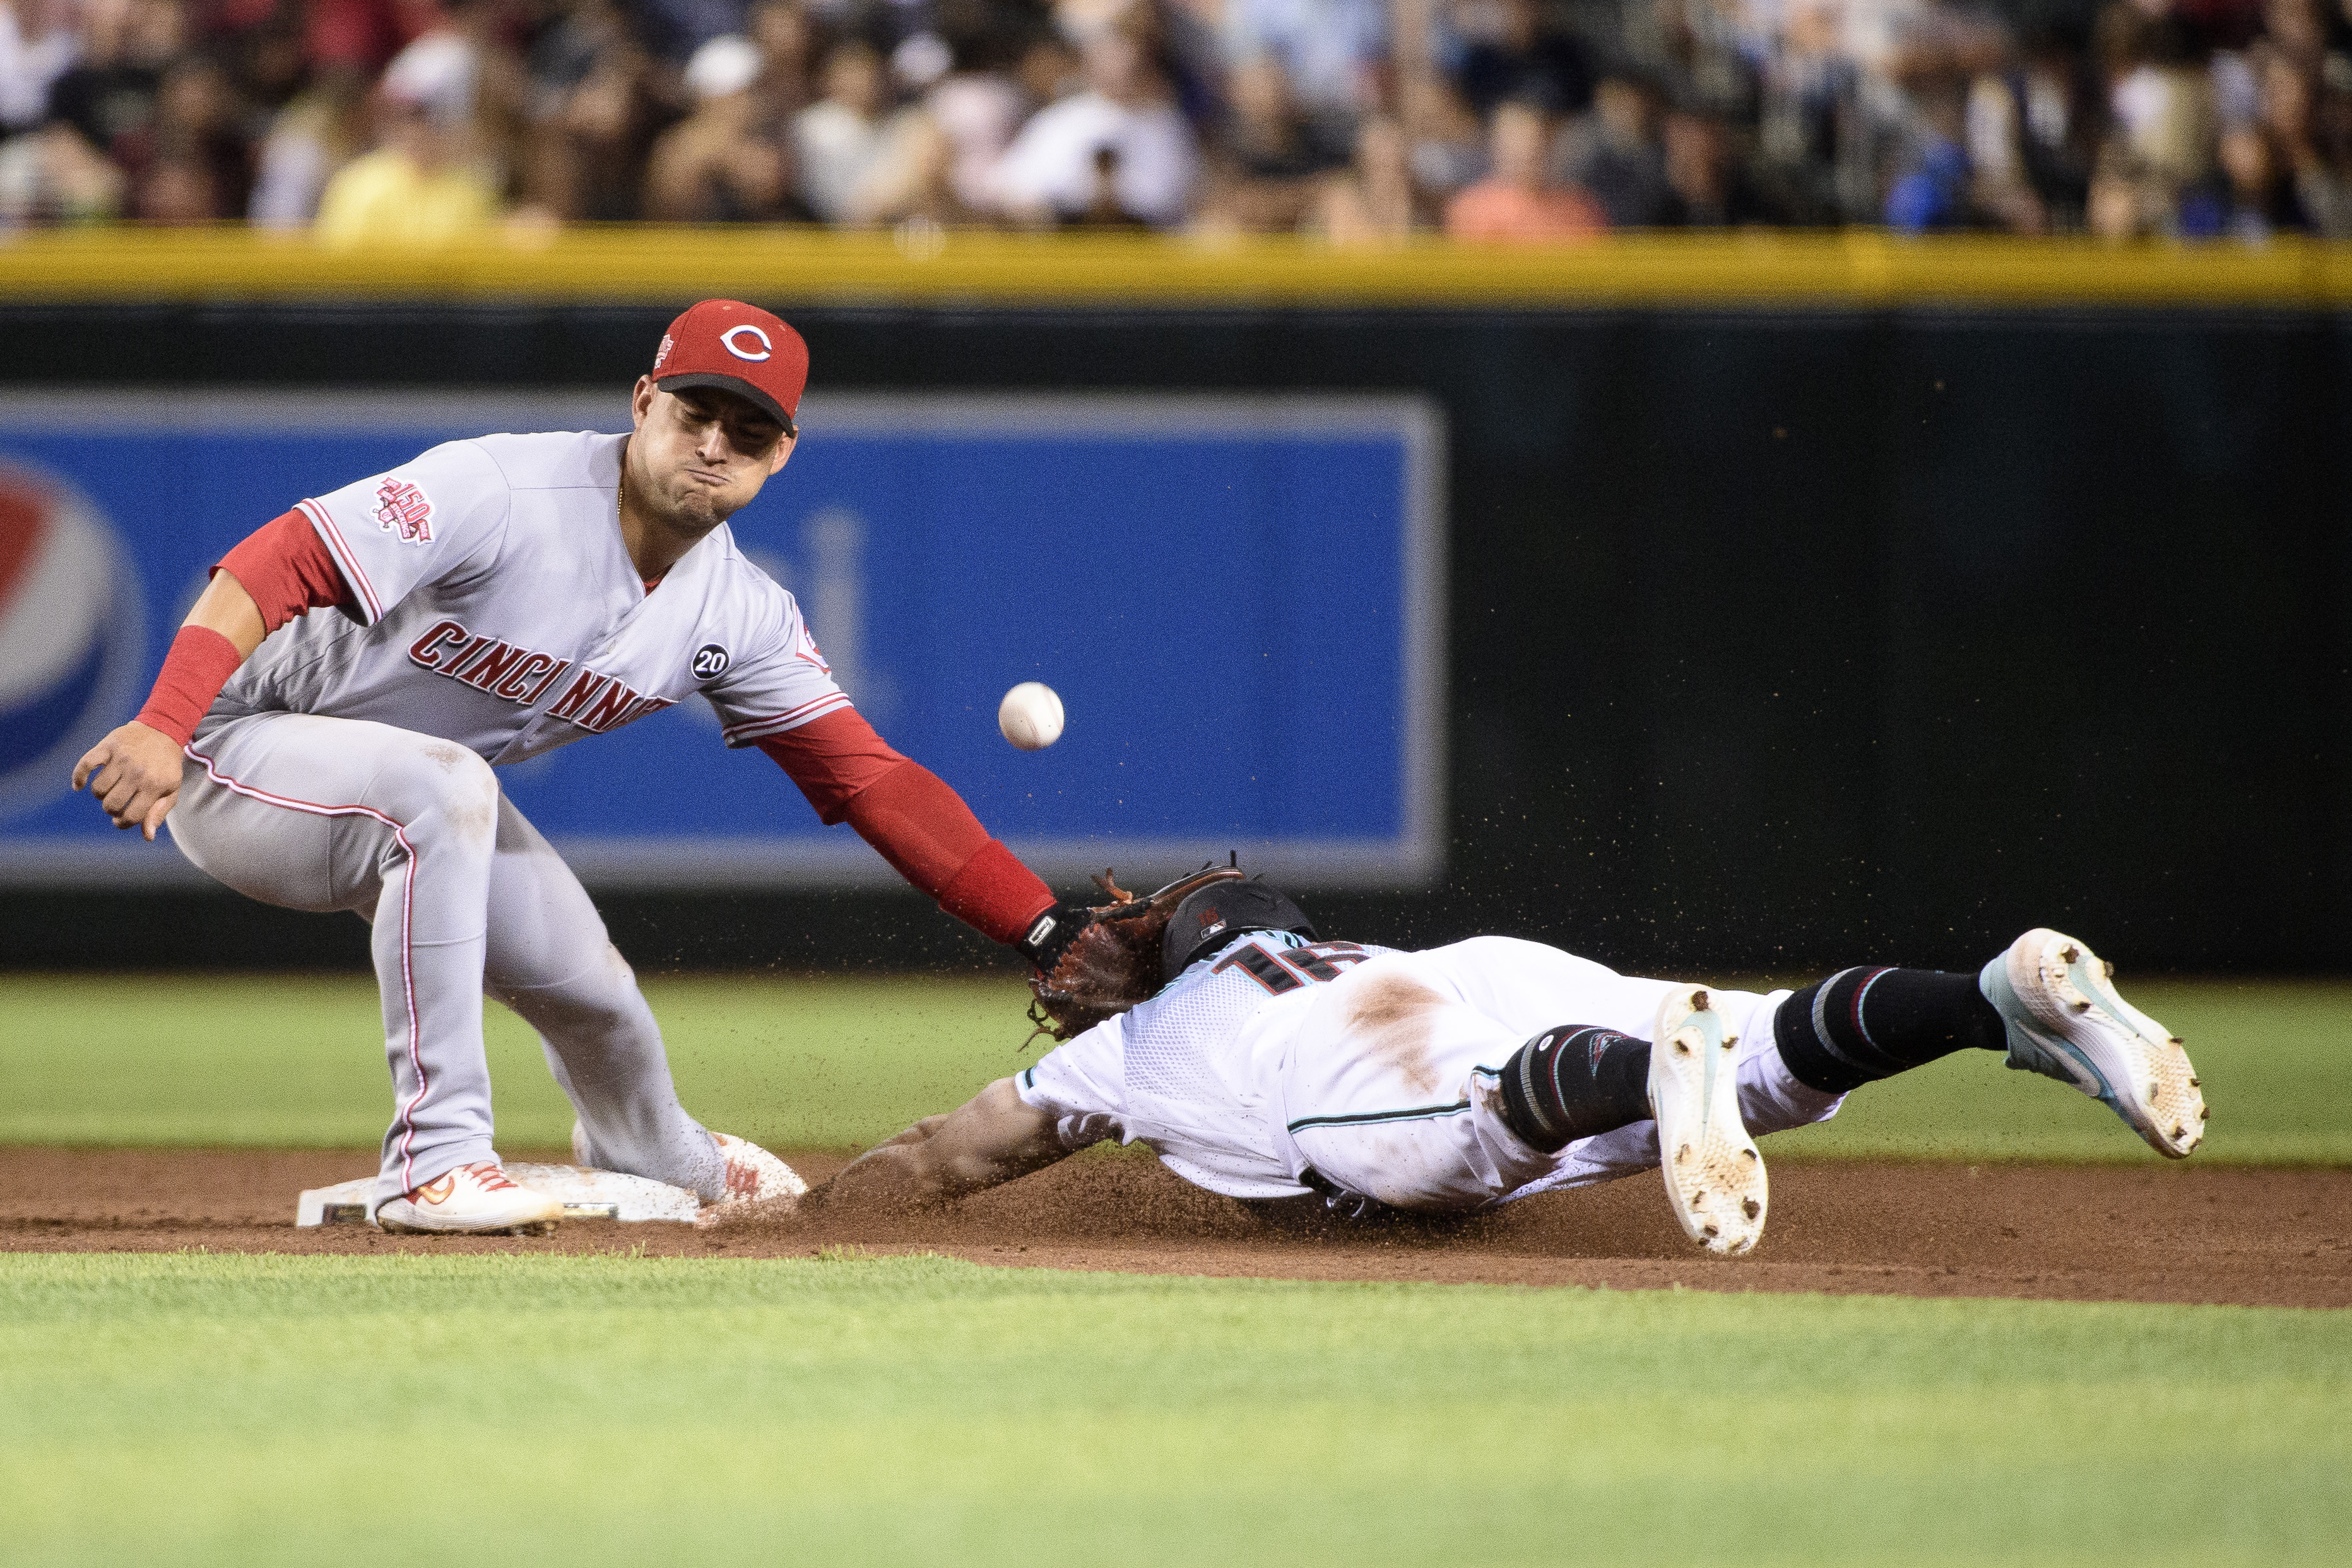 Tim Locastro safely steals second base.